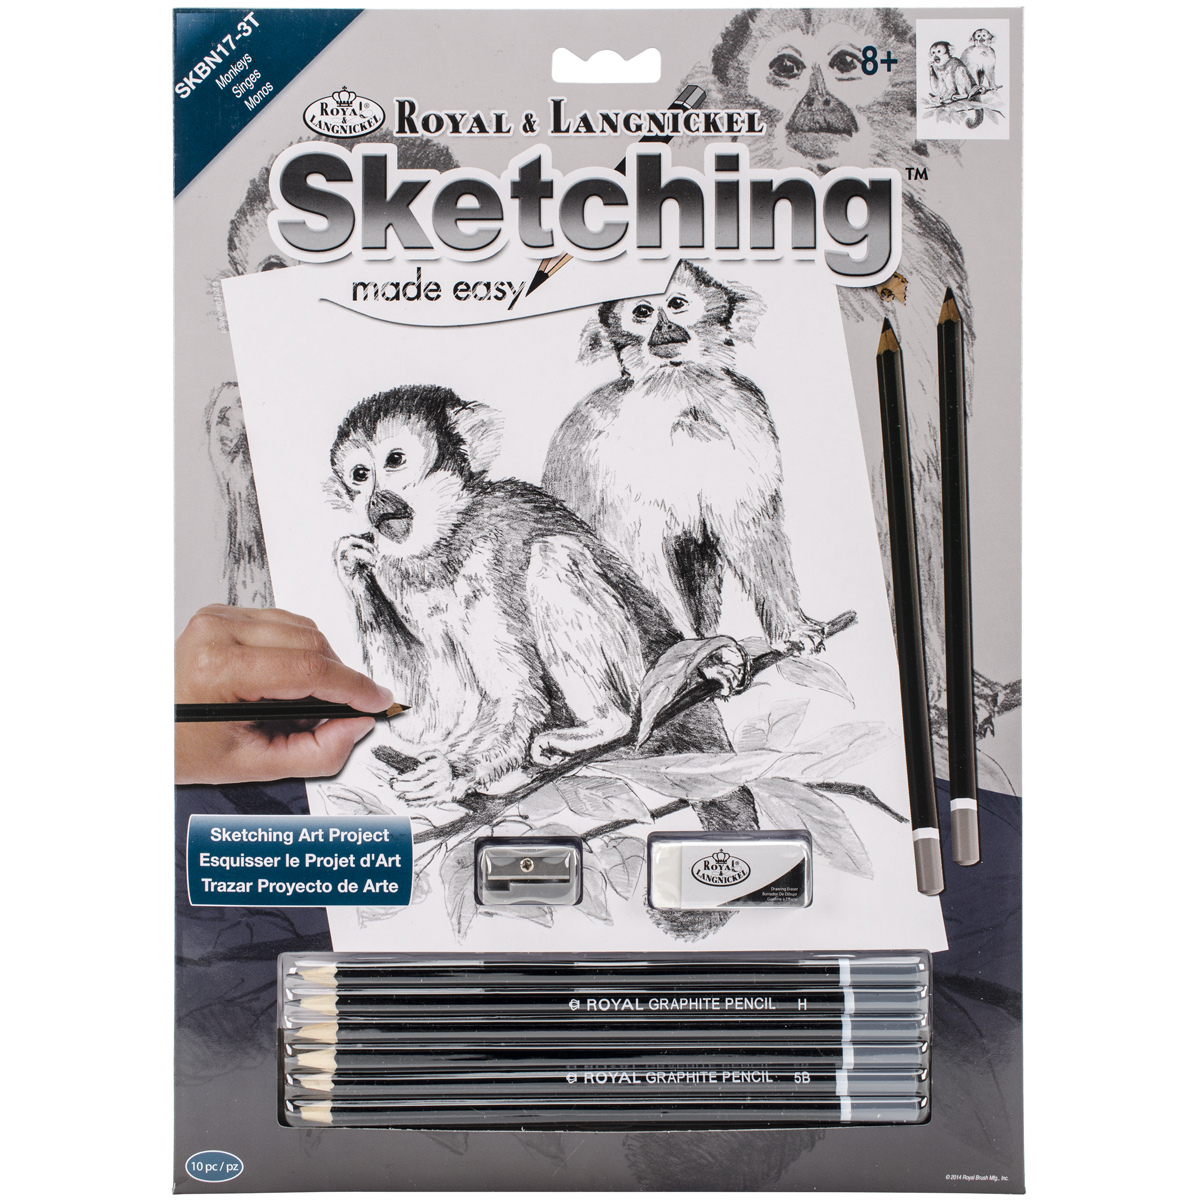 Royal Brush Sketching Made Easy Kit, 9-Inch by 12-Inch, Monkeys Multi-Colored